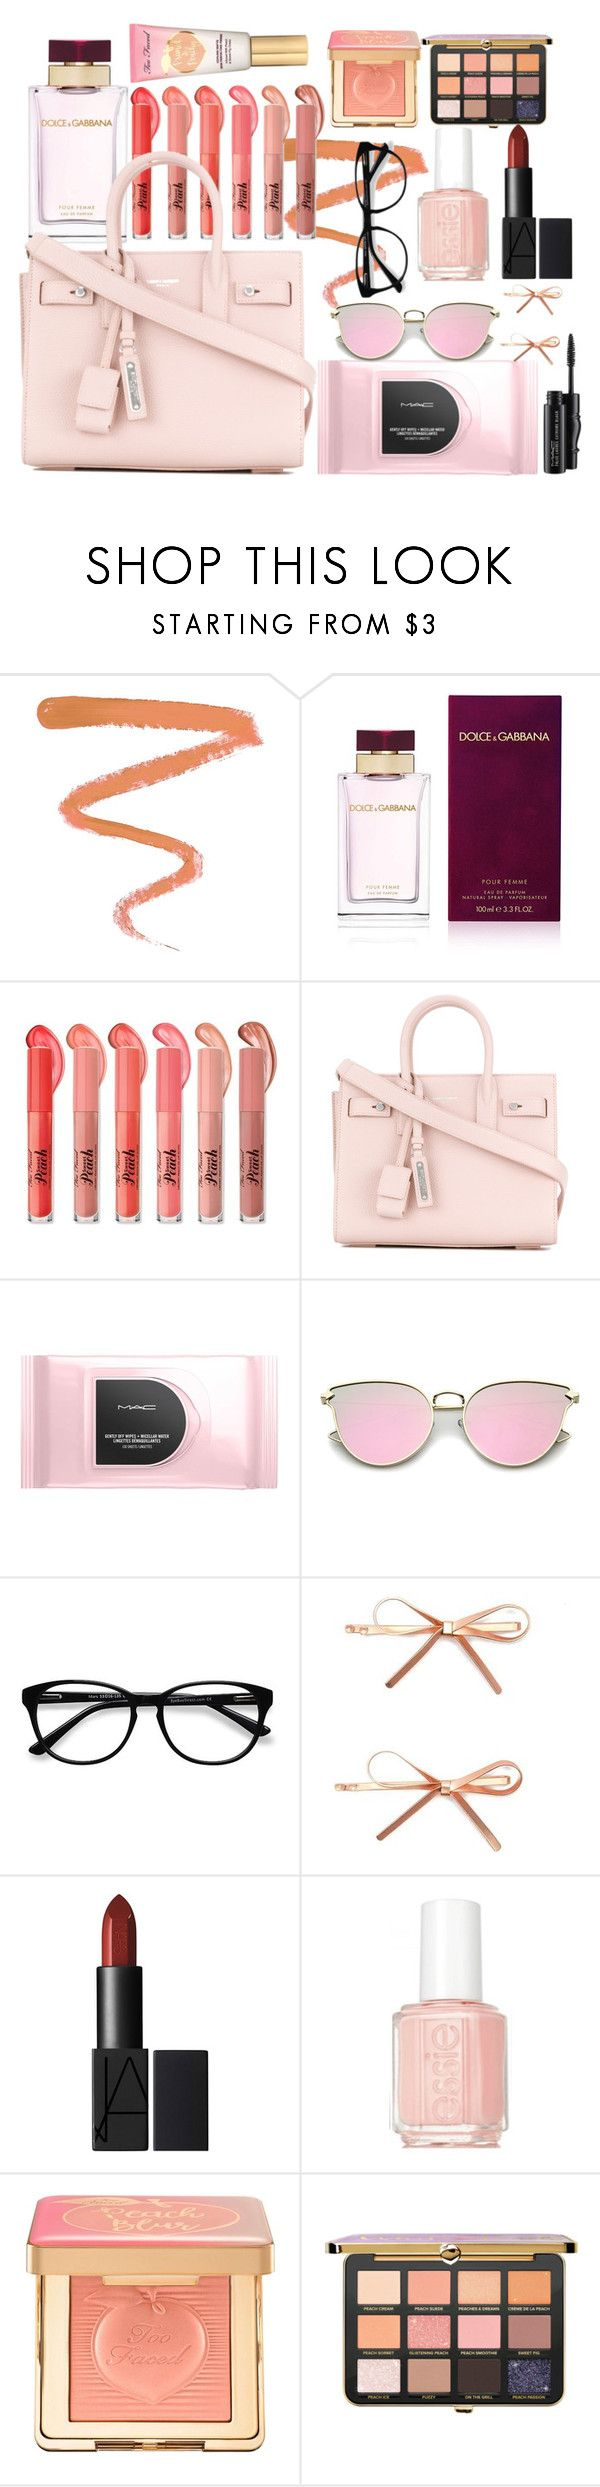 """""""Peach Lipstick"""" by mimixoxomwah ❤ liked on Polyvore featuring beauty, Ellis Faas, Dolce&Gabbana, Yves Saint Laurent, MAC Cosmetics, EyeBuyDirect.com, Forever 21, Essie, Too Faced Cosmetics and peachlipstick"""